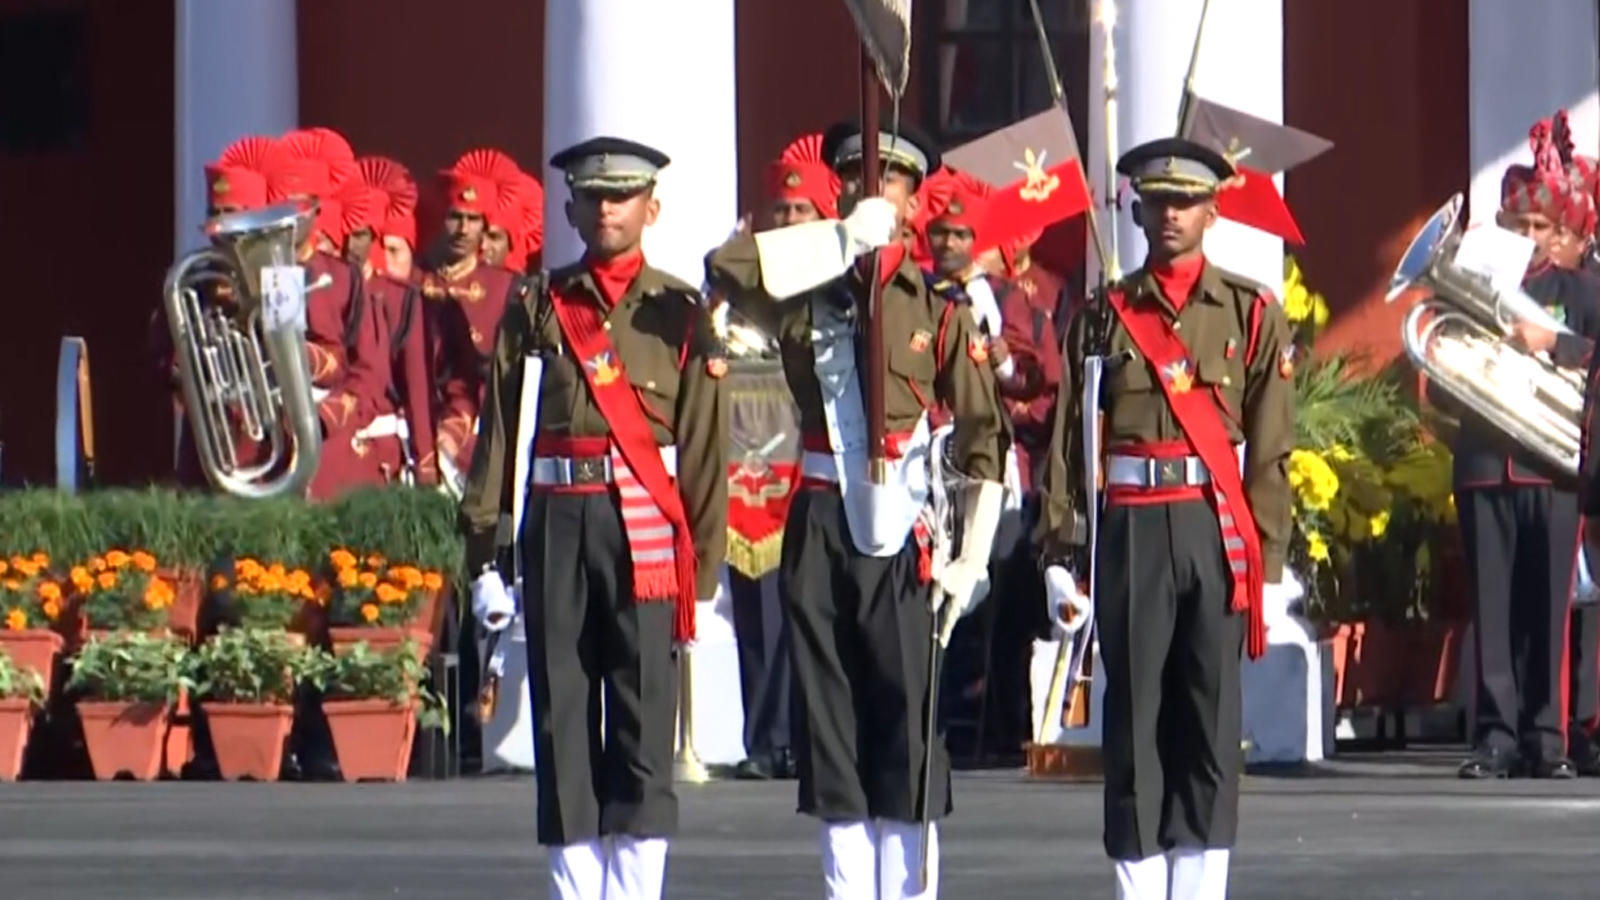 defence-minister-rajnath-singh-attends-imas-passing-out-parade-in-dehradun